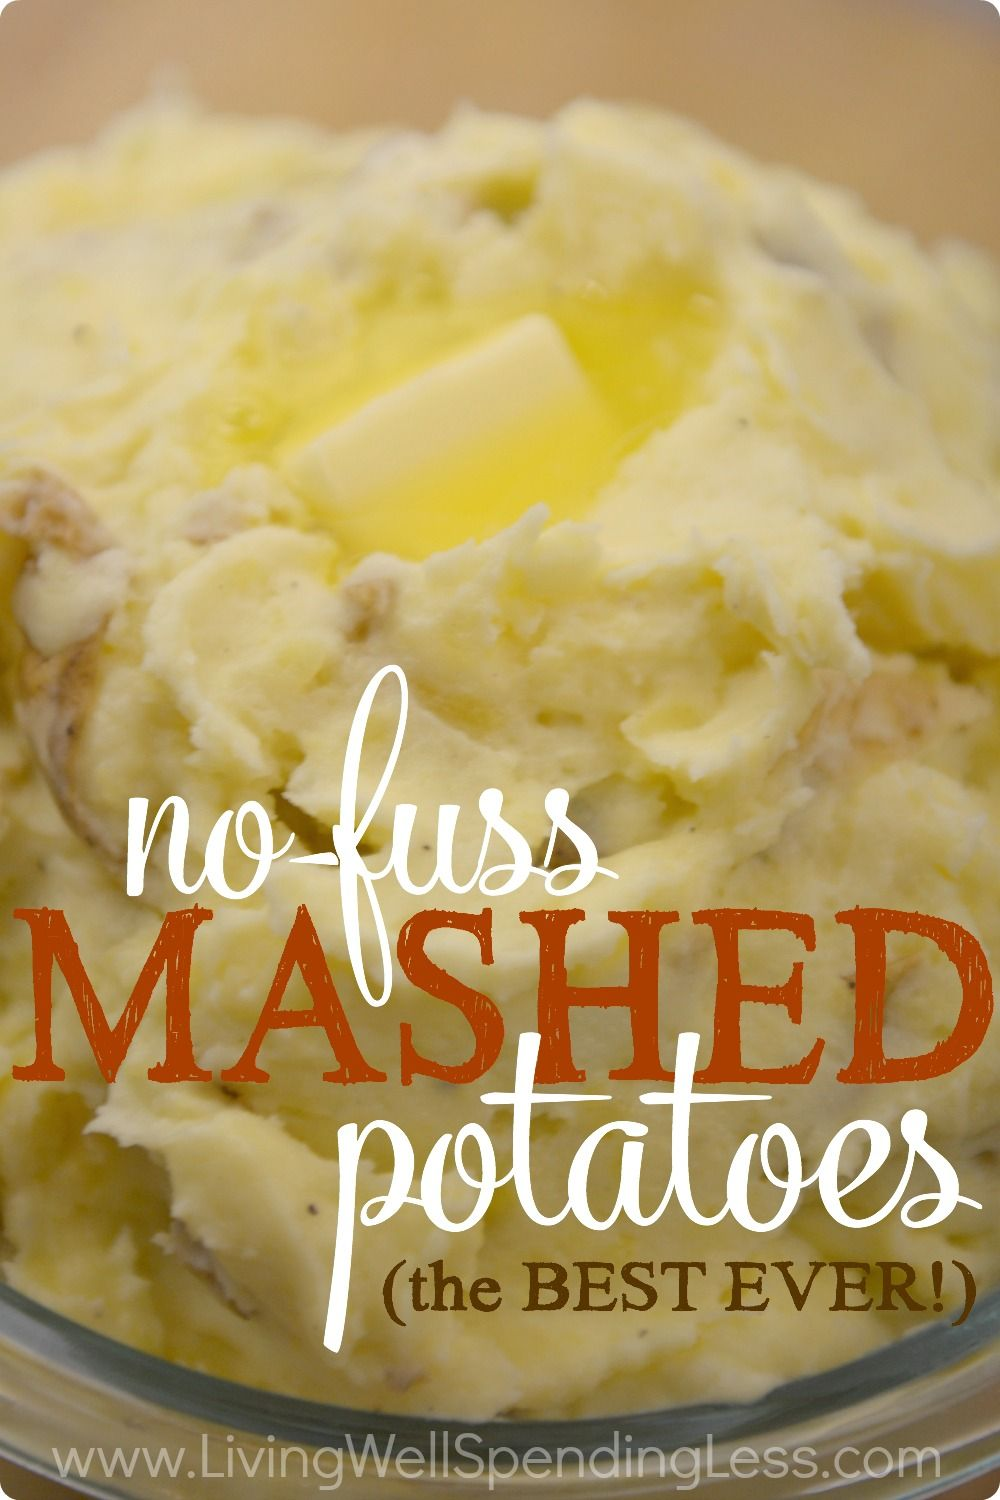 Think homemade mashed potatoes are too much work? Think again my friends. These mouthwatering potatoes are practically perfect in every way, with a rich, creamy texture and a flavor that is guaranteed to steal the show! The best part? No peeling required! Seriously, you haven't lived until you've tried these potatoes! #mashedpotatoesrecipe